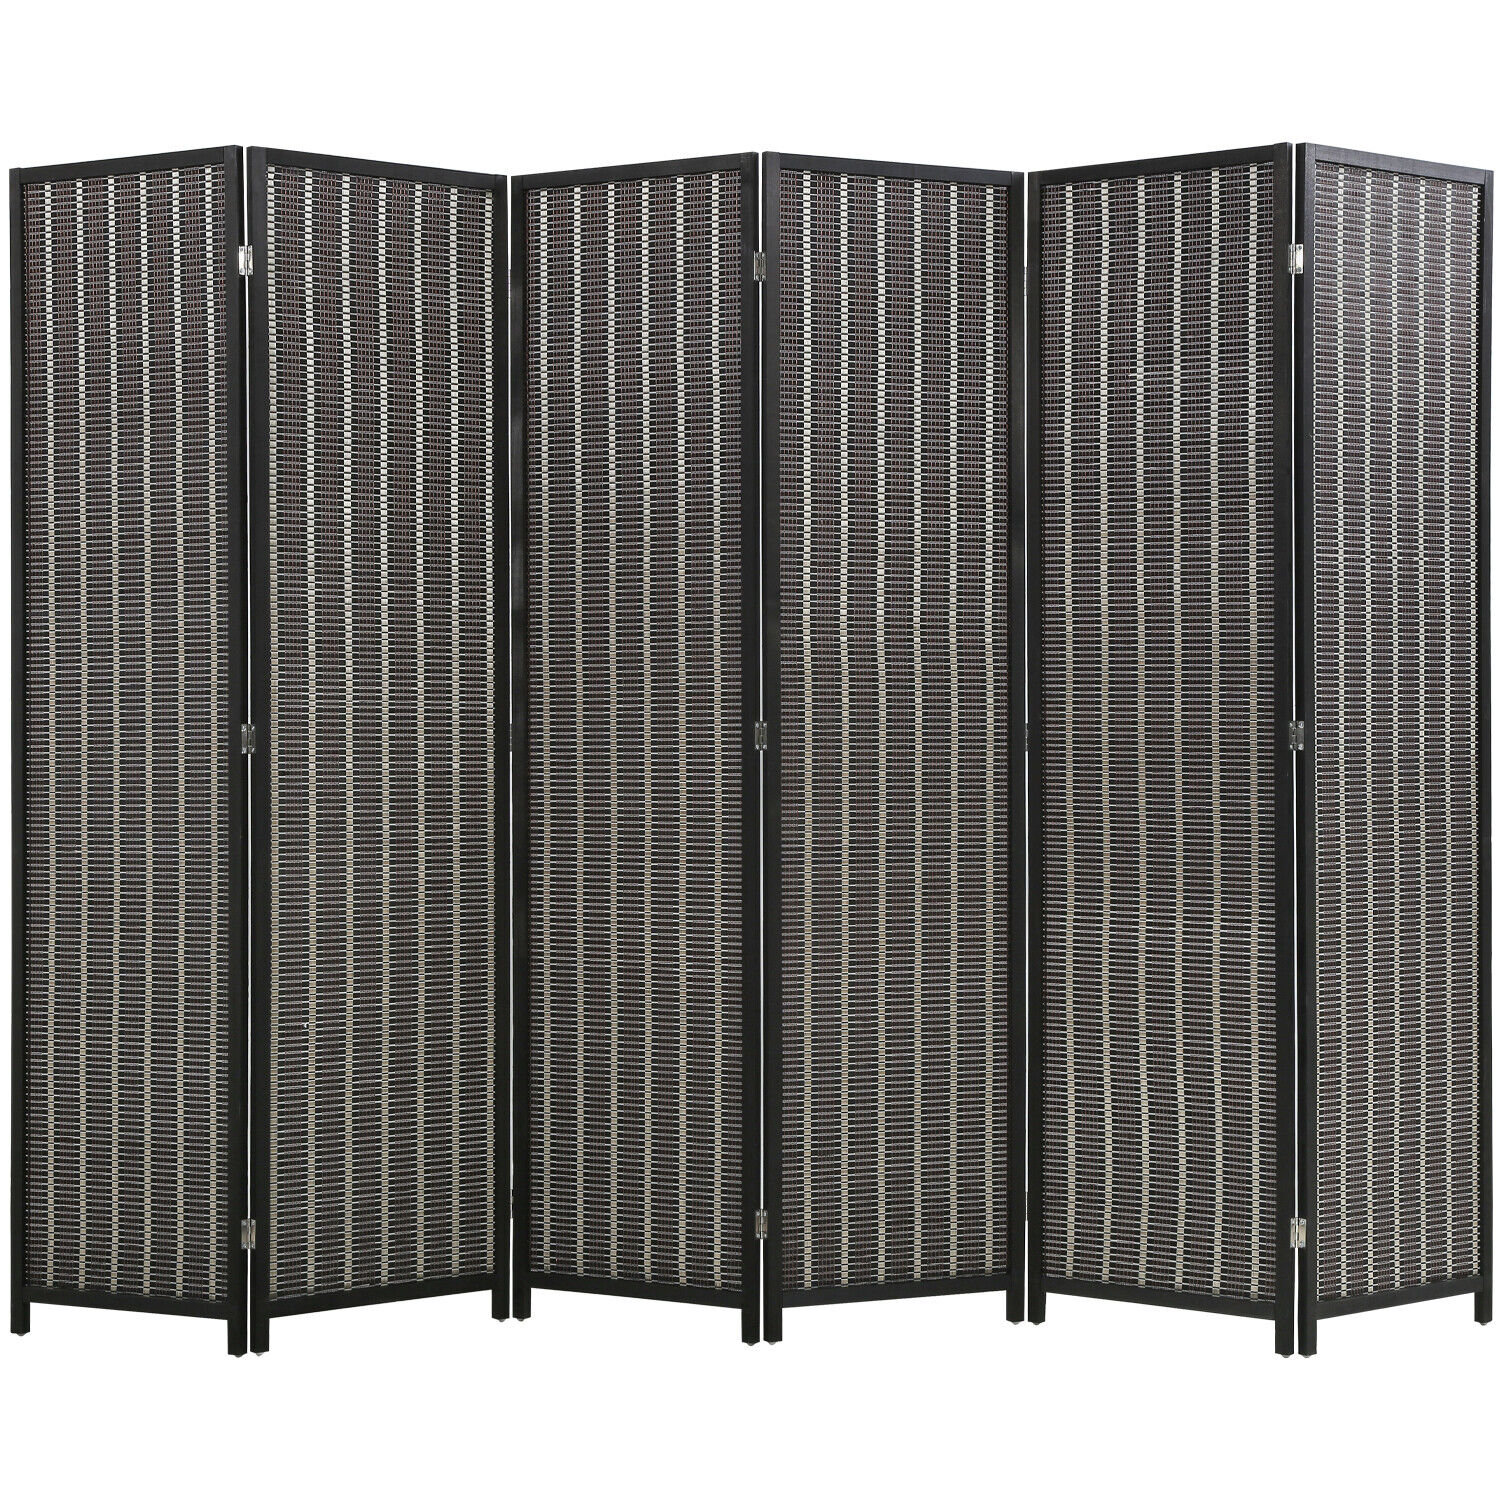 6 Panel 72 Inch Room Divider Bamboo Folding Privacy Wall Divider Wood Screen Furniture